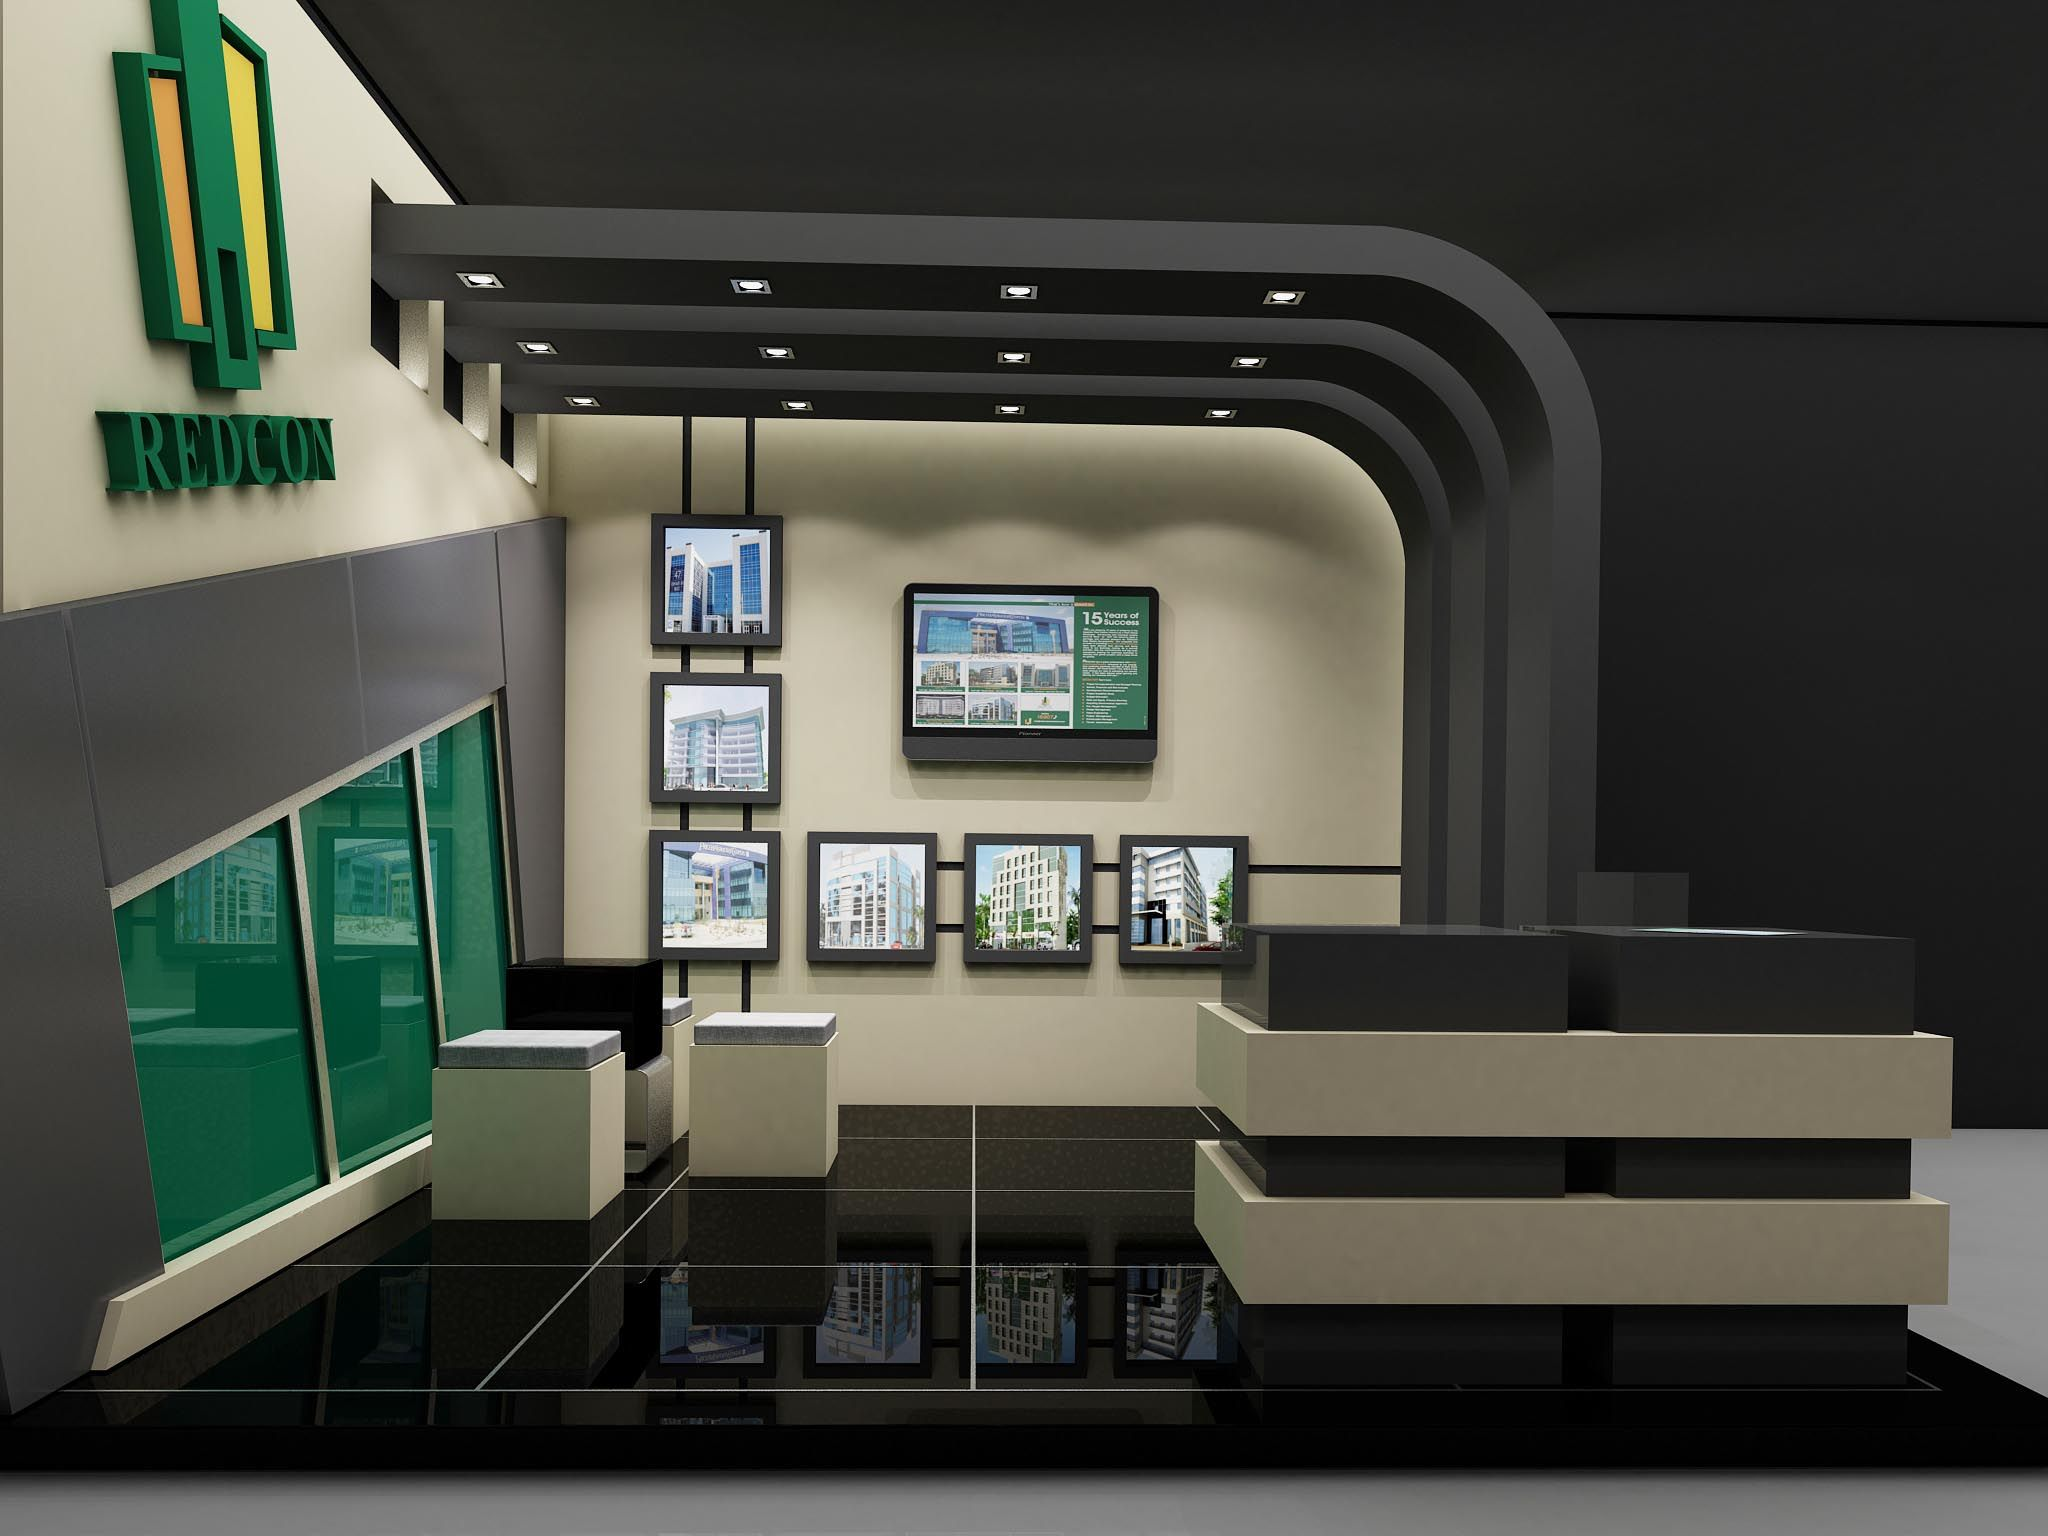 Redcon booth Design By Remal Architects  Architect. Adnan Elmaleh